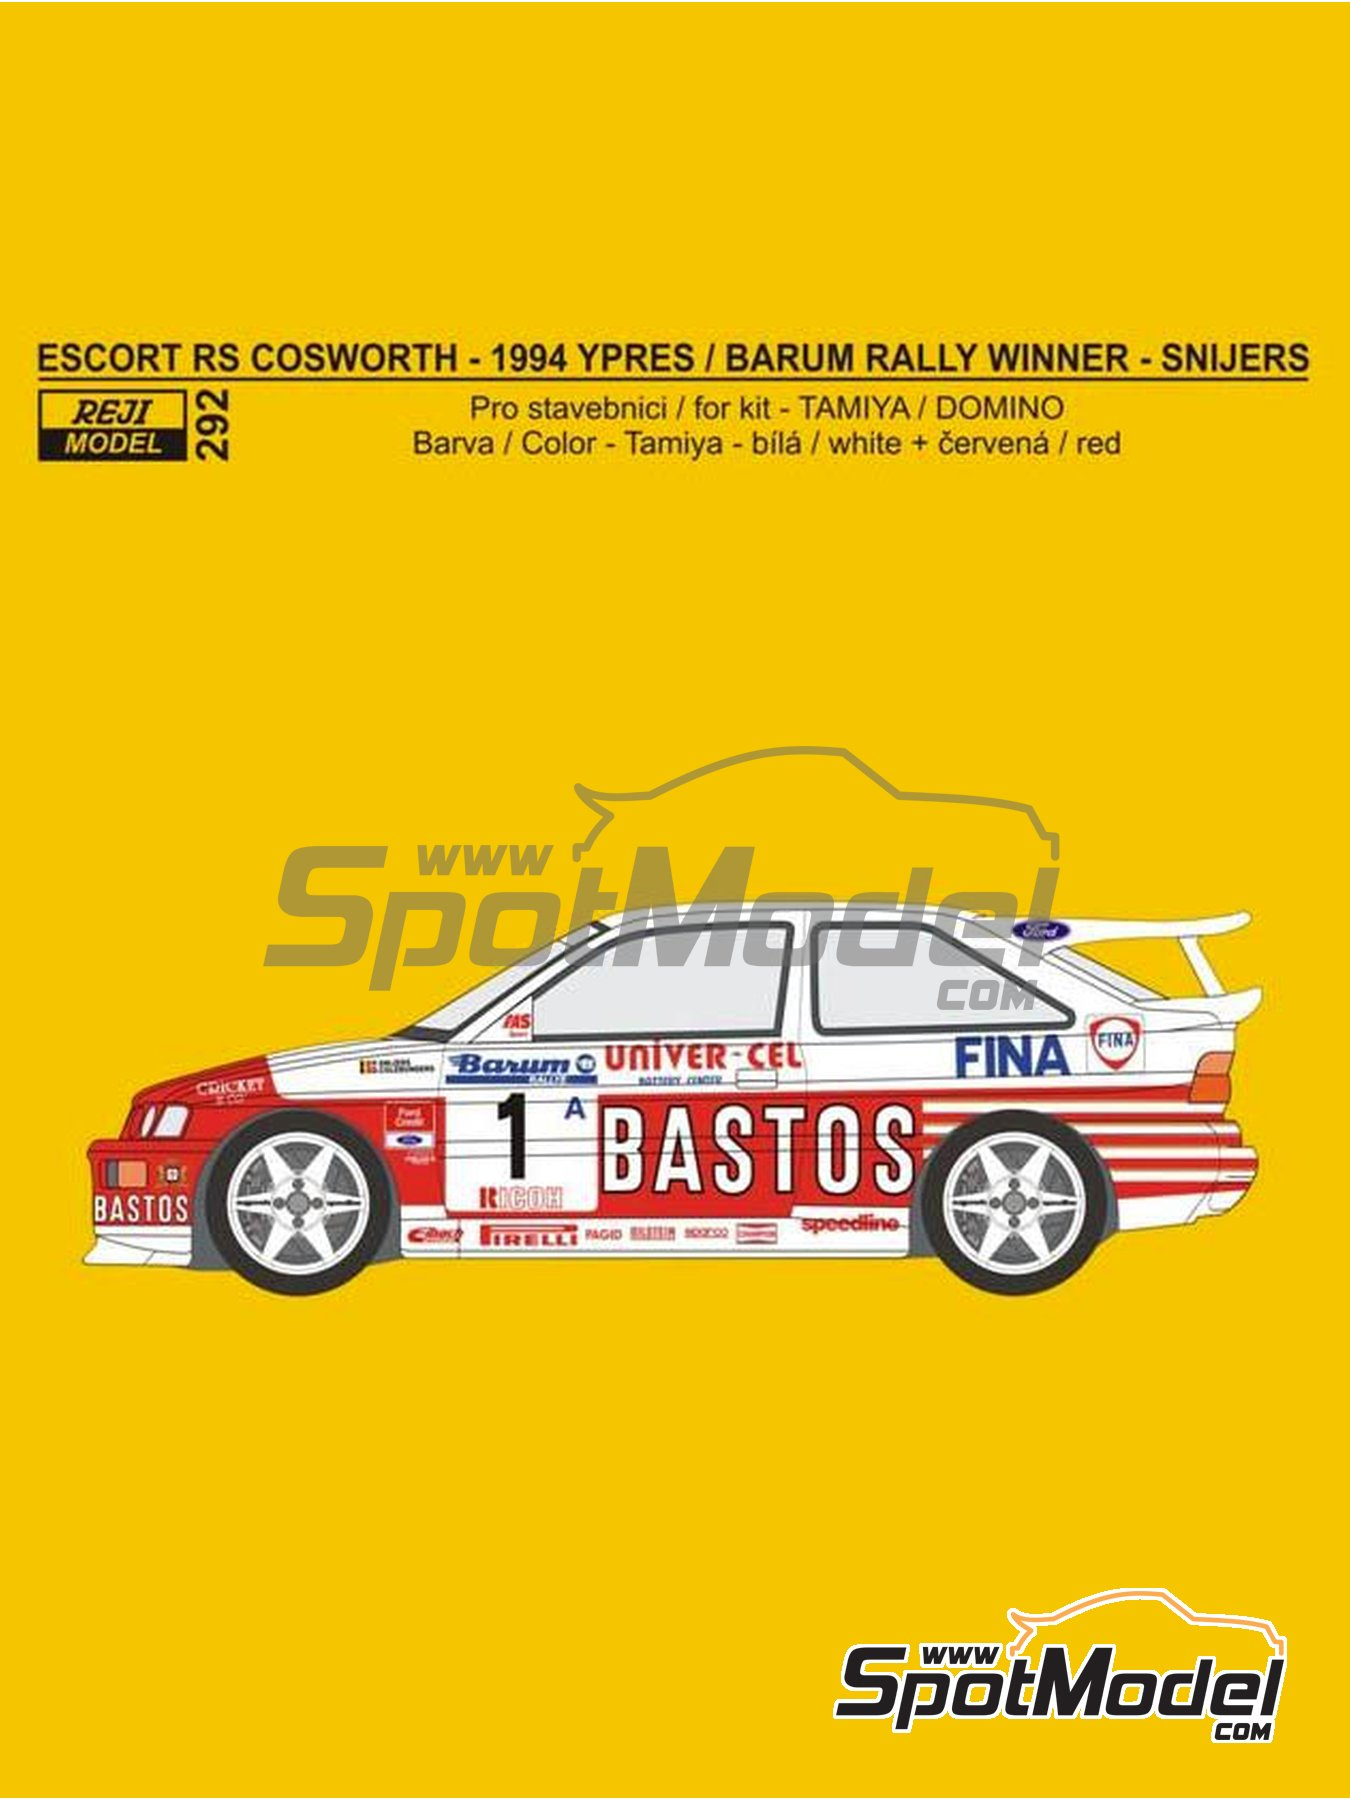 Ford Escort RS Cosworth Bastos - Barum Czech Rally, Ypres Rally 1994 | Marking / livery in 1/24 scale manufactured by Reji Model (ref.REJI-292) image